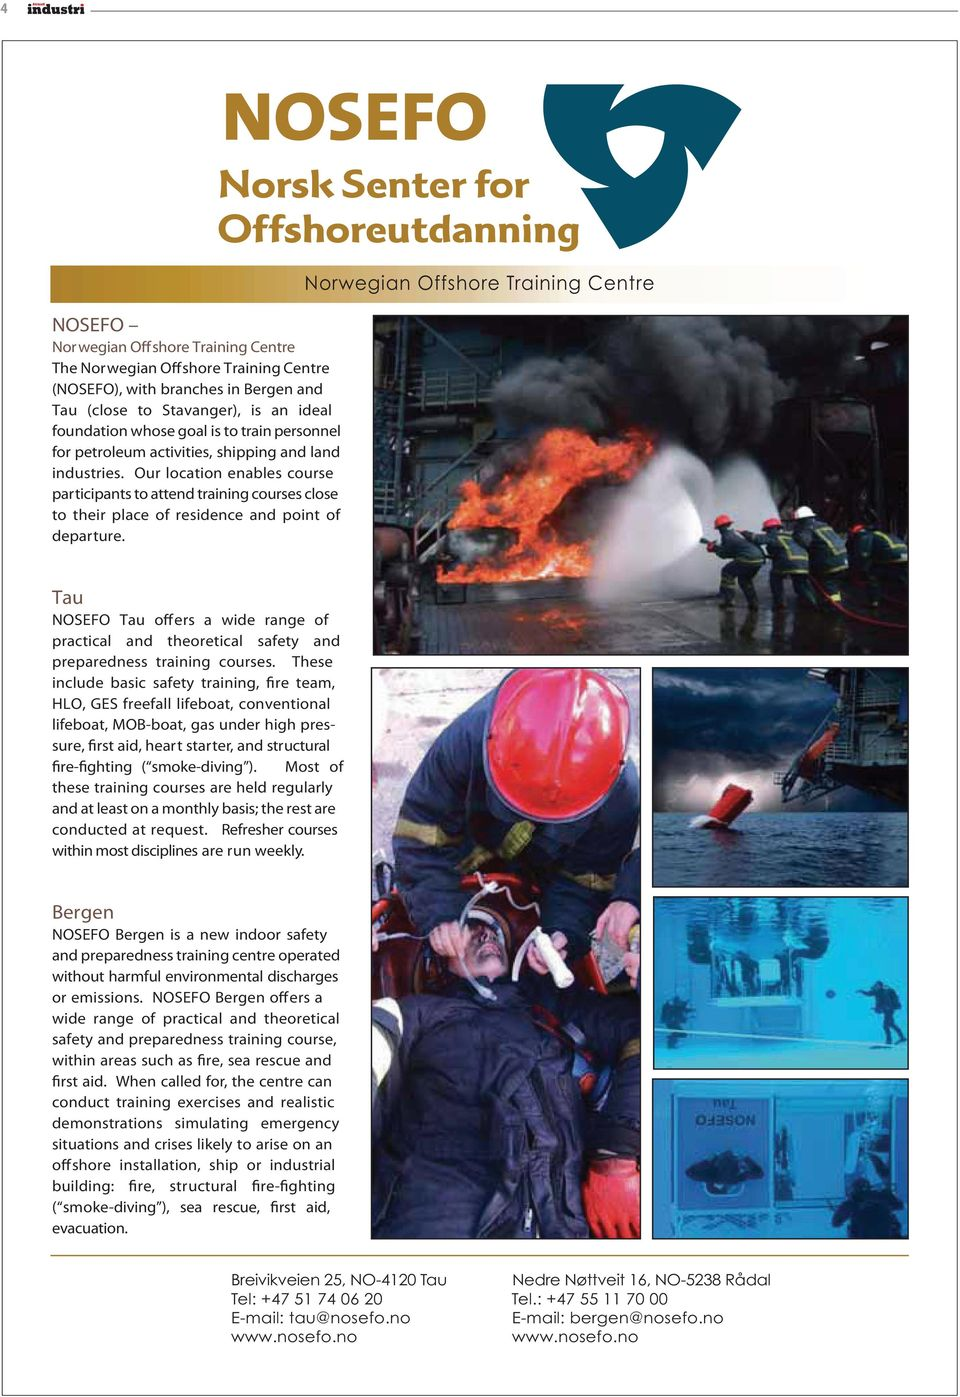 Norwegian Offshore Training Centre Tau NOSEFO Tau offers a wide range of practical and theoretical safety and preparedness training courses.